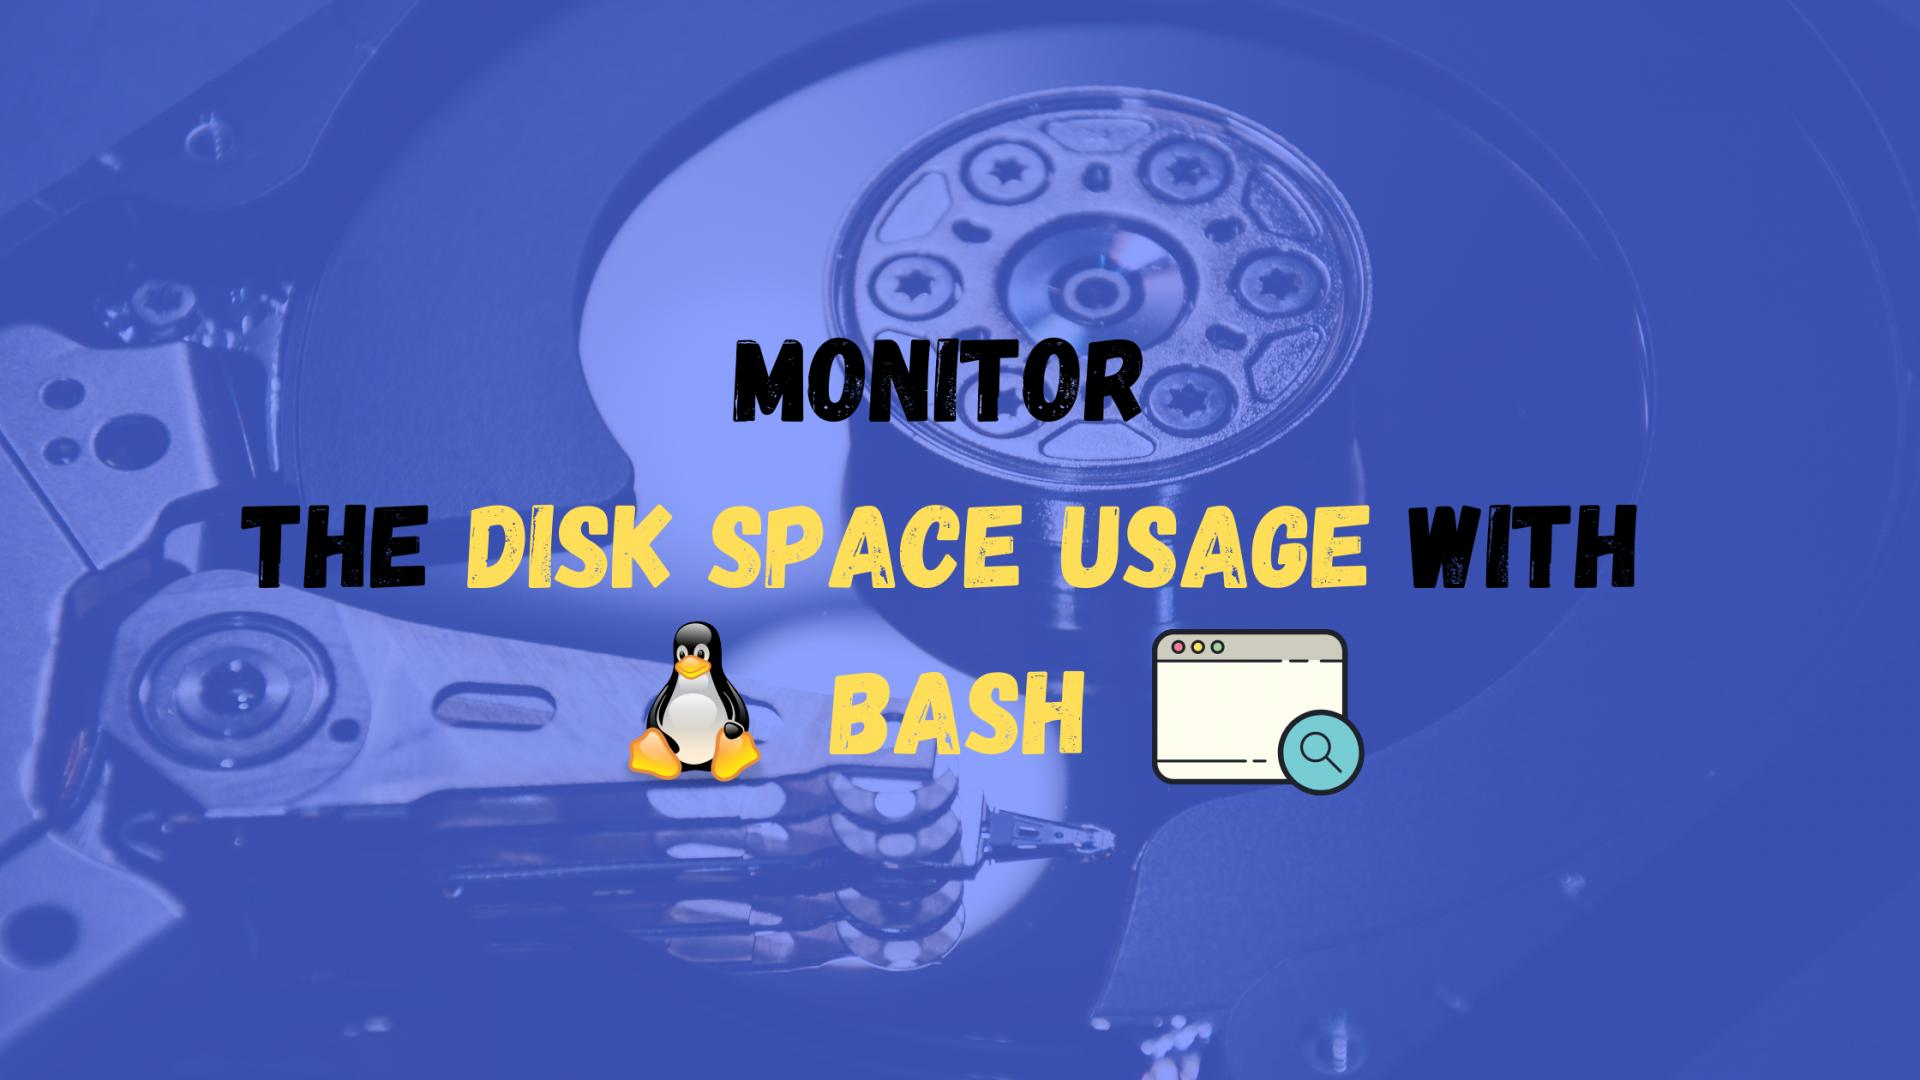 Monitor disk space usage with BASH